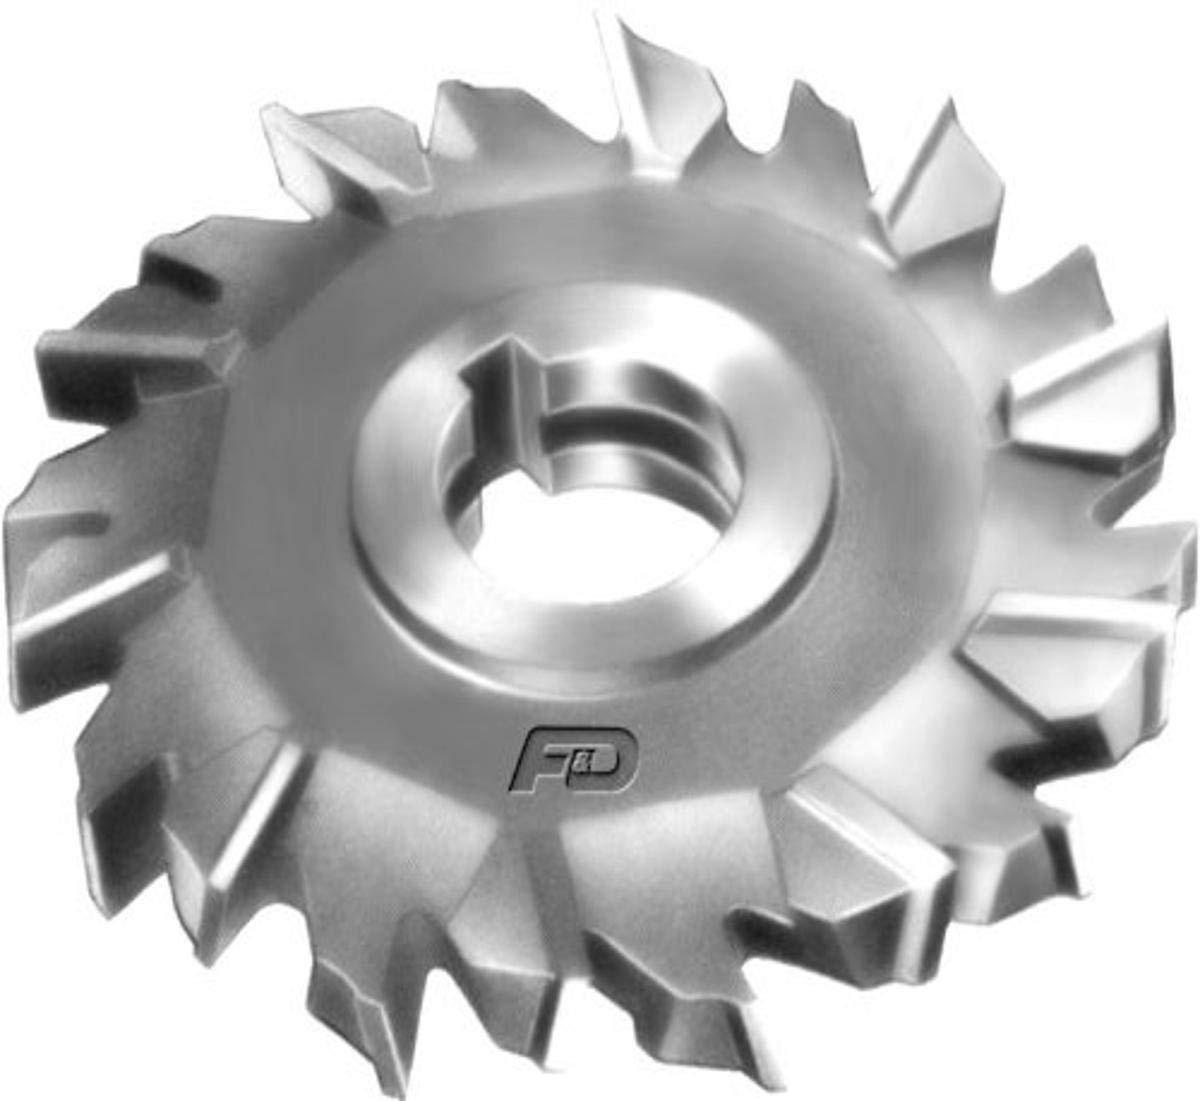 6 Diameter 1.25 Hole Size High Speed Steel 1 Width of Face F/&D Tool Company 10917-A484 Side Milling Cutter